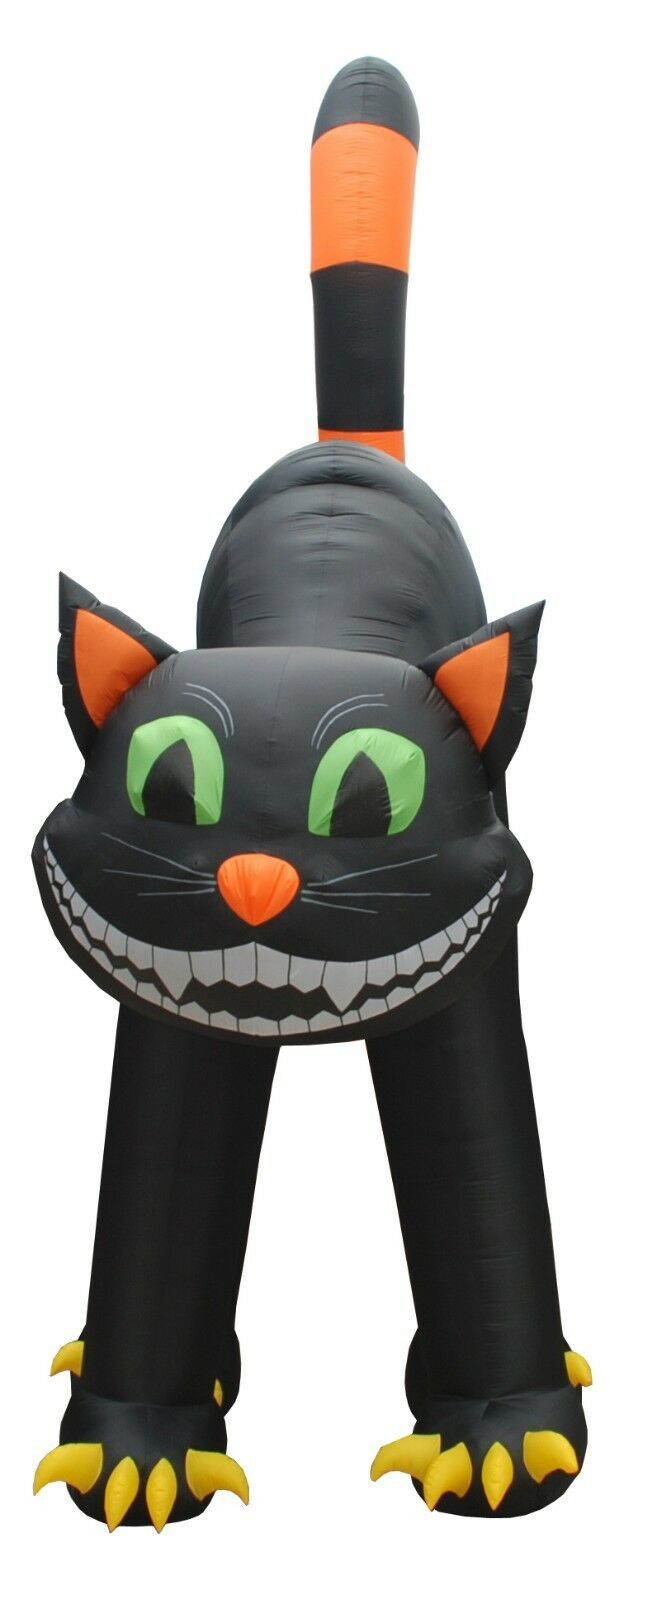 20 FOOT Animated Lighted Jumbo Halloween Inflatable Black Cat Yard Decoration image 2